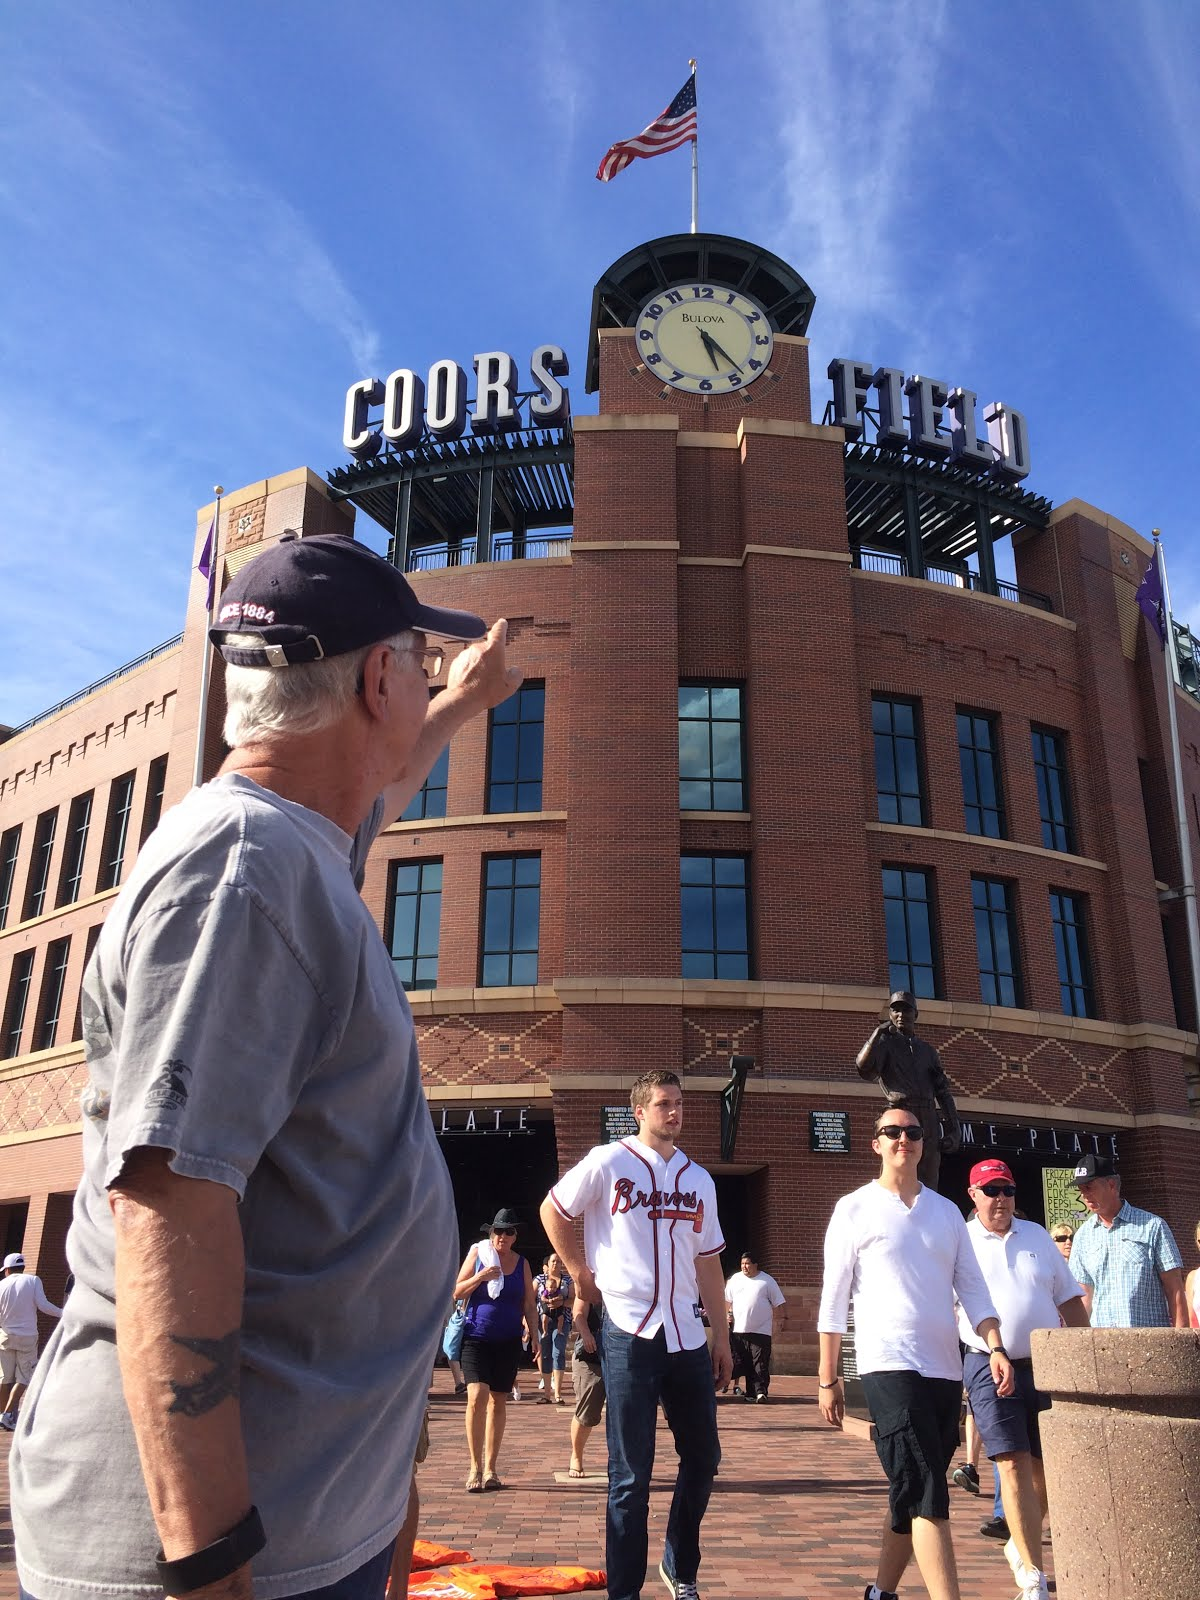 7/12/15 at Coors Field